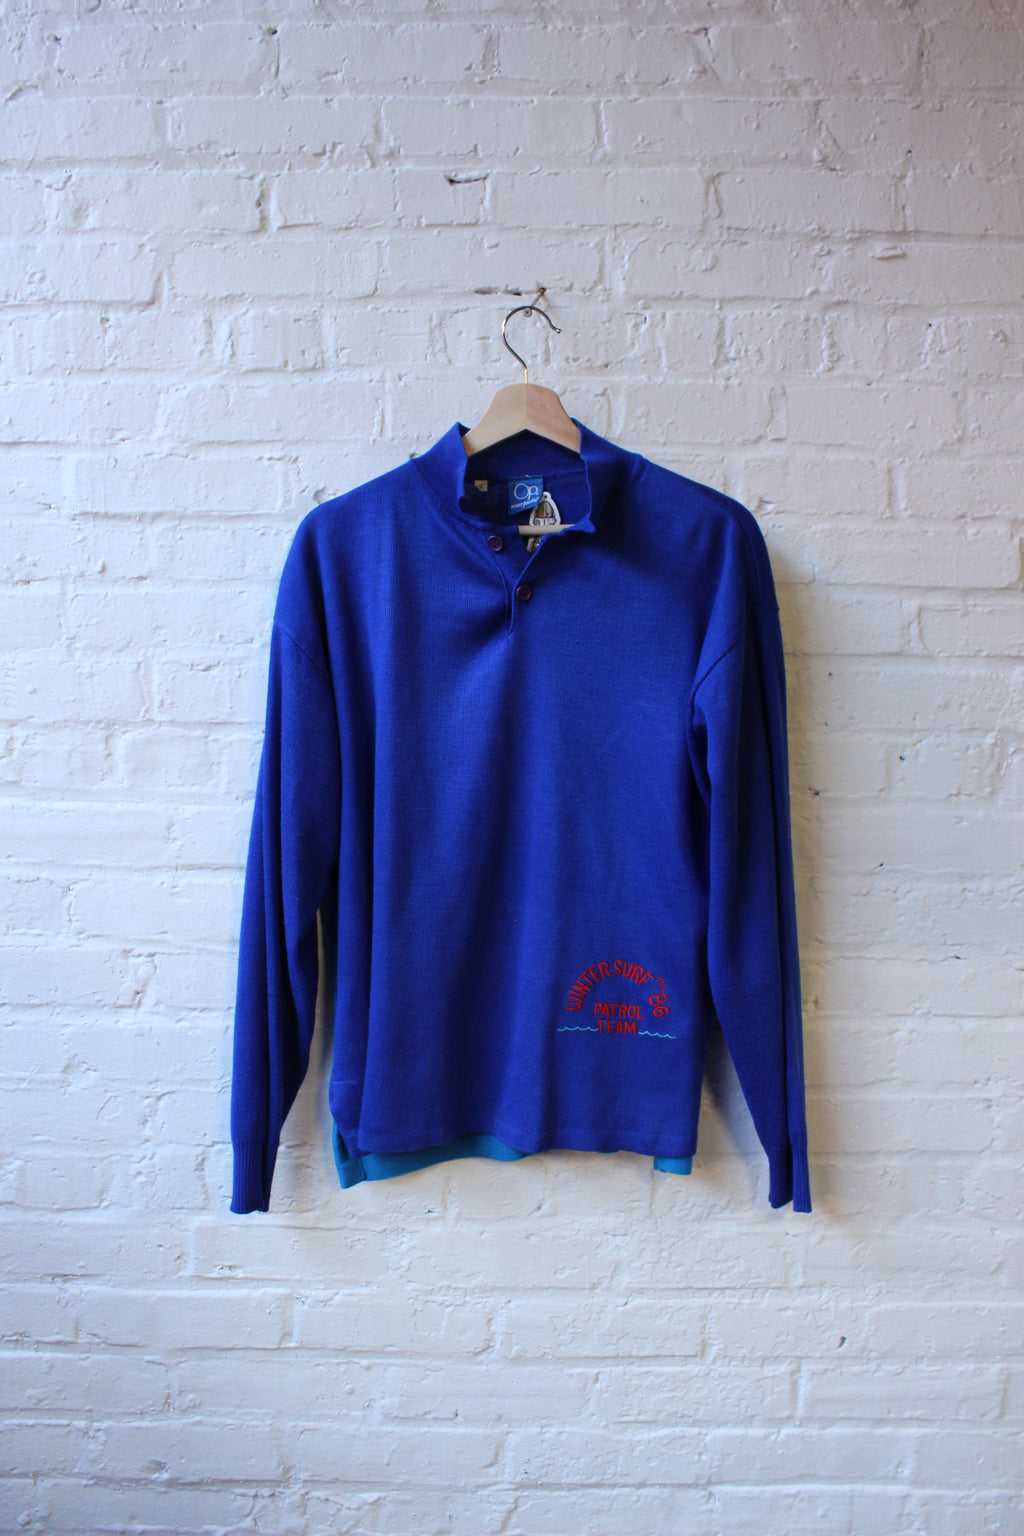 OP Winter Surf 86 Shirt